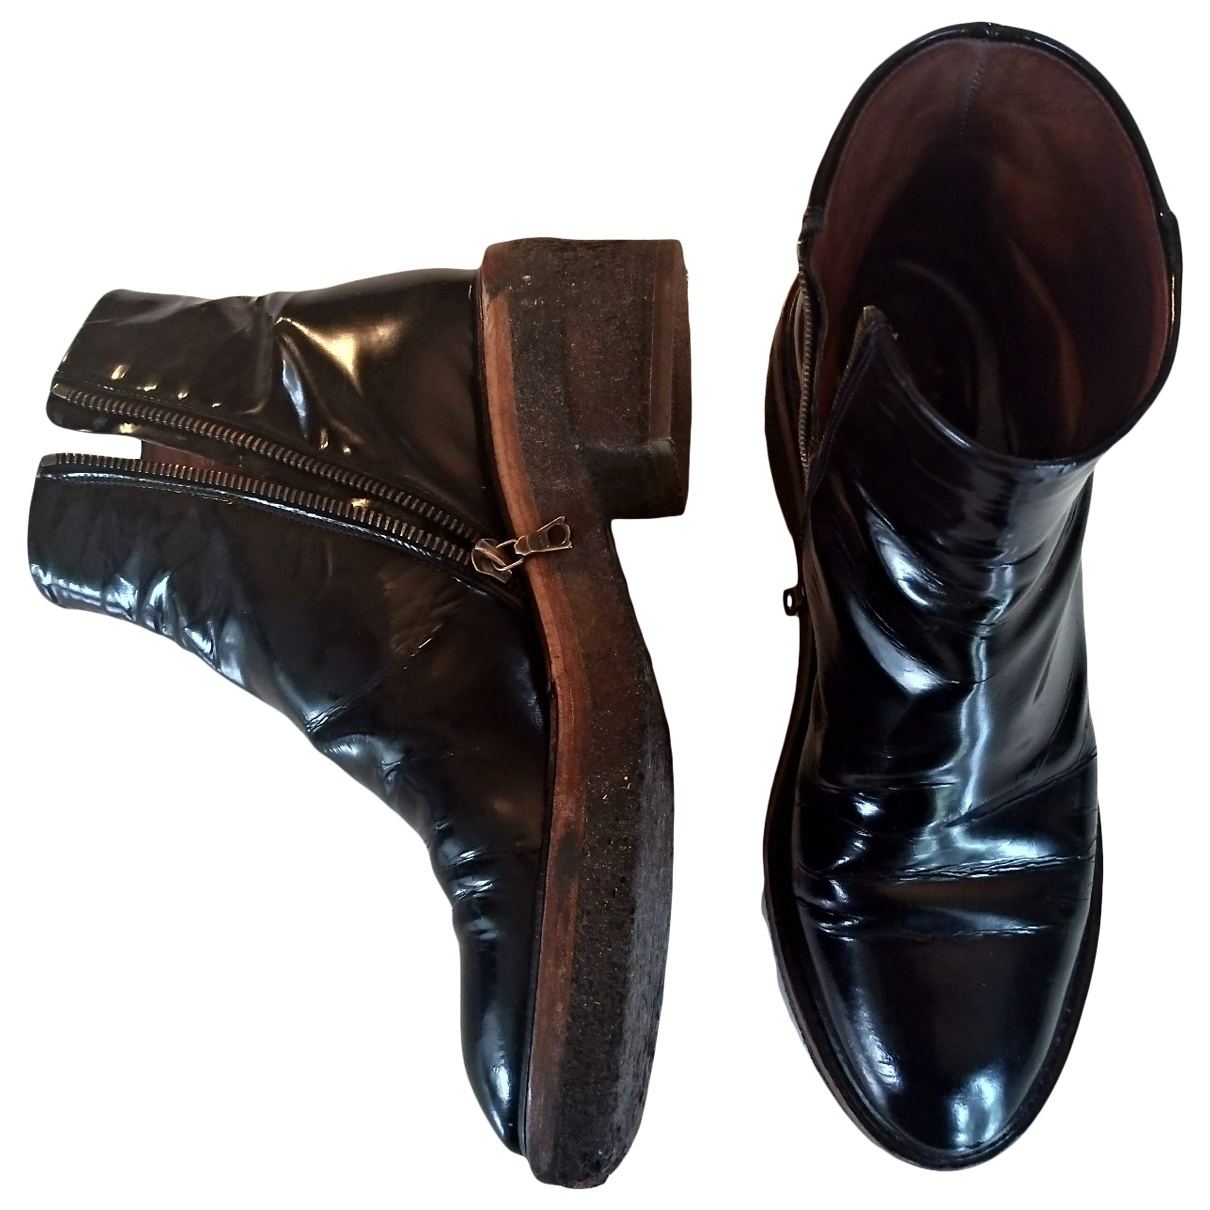 Dries Van Noten \N Black Patent leather Ankle boots for Women 37 EU